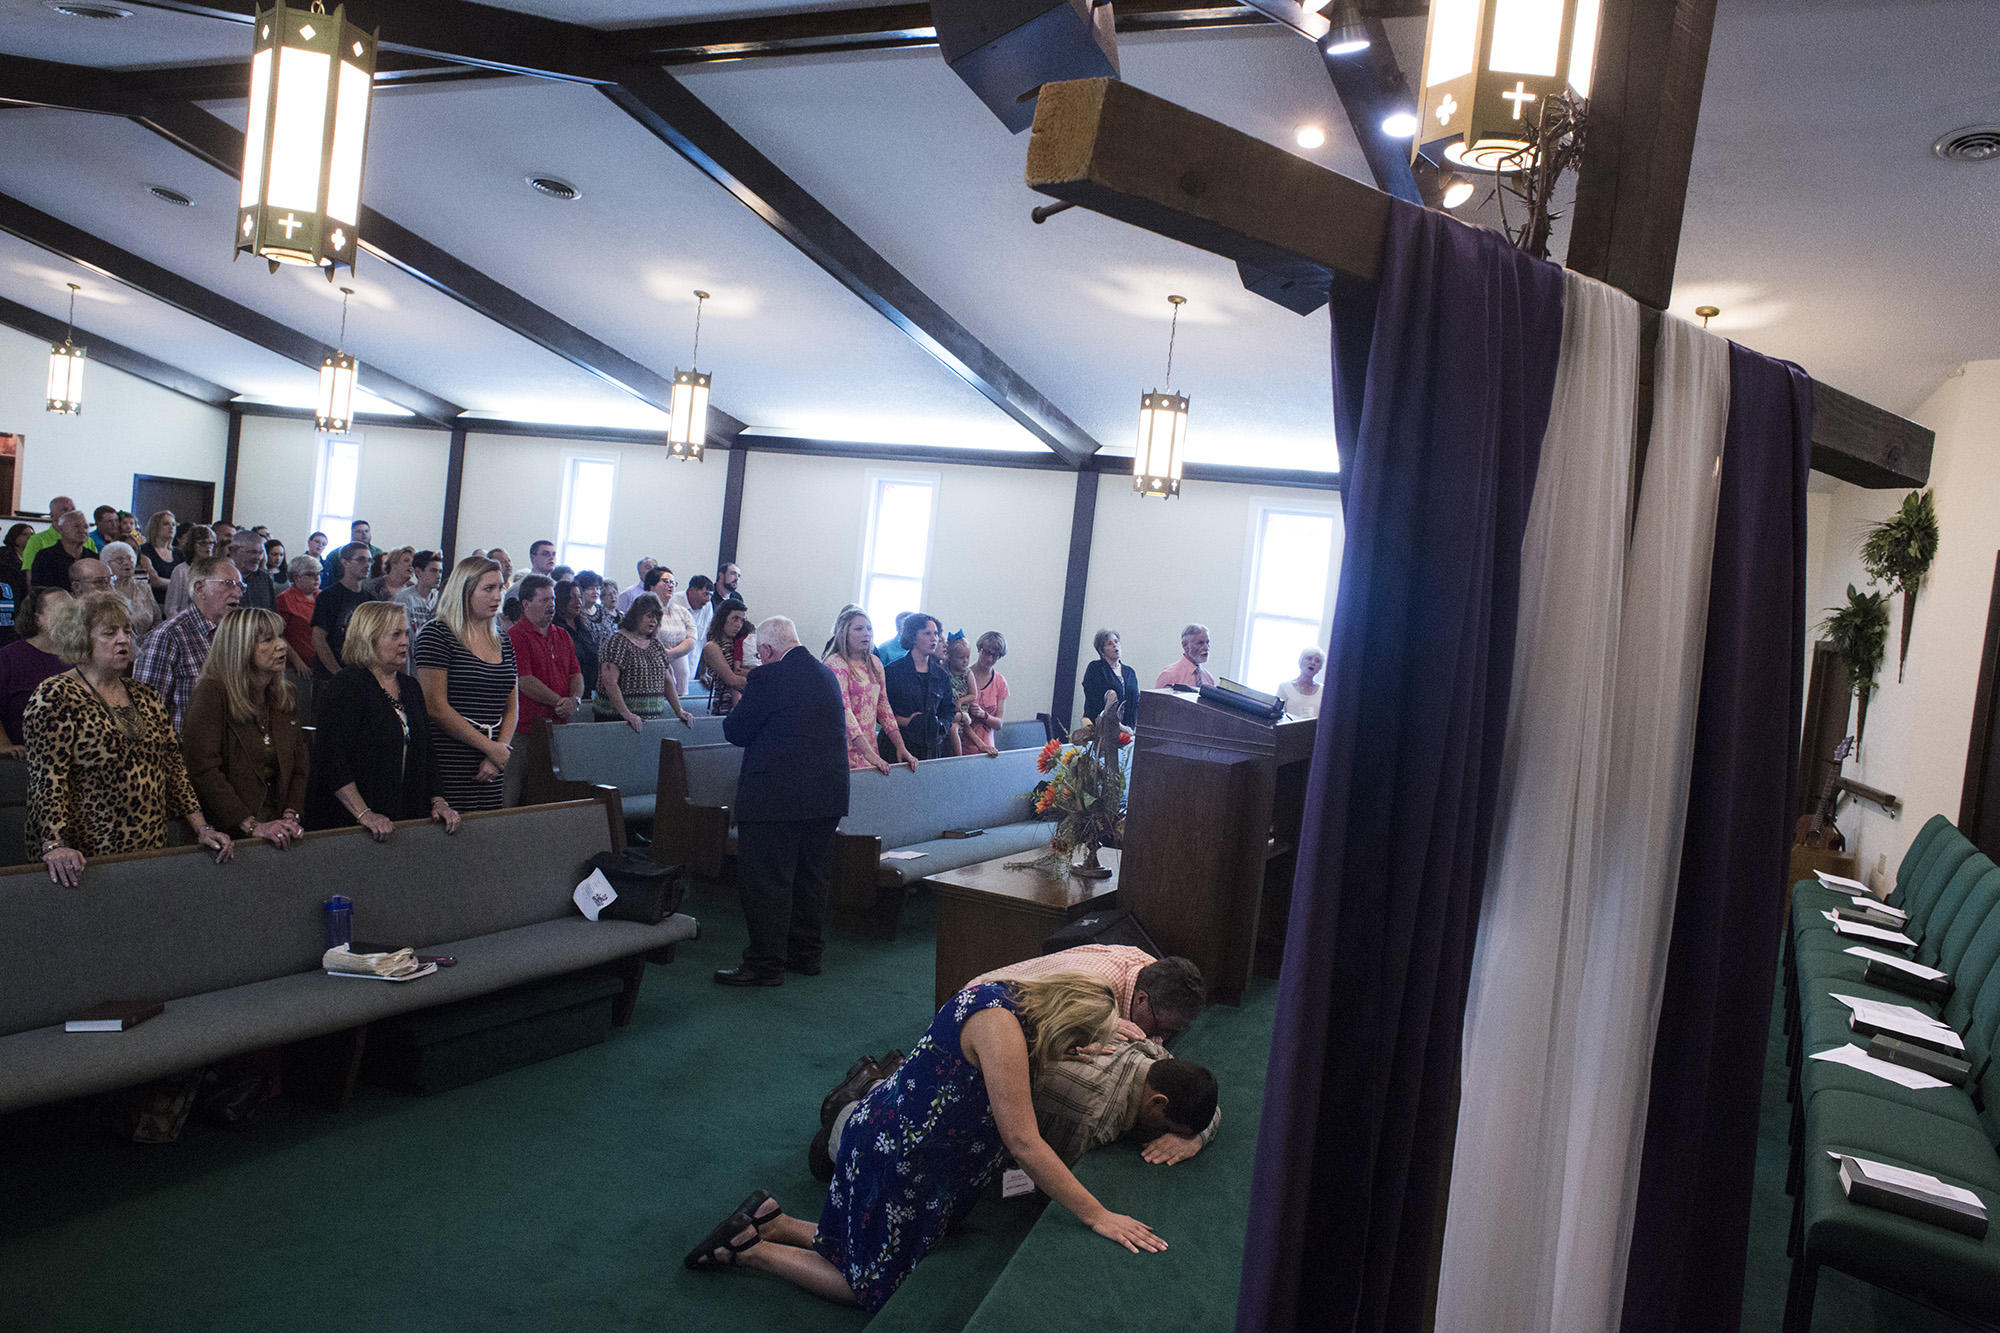 Mary Sloane, an English teacher at Floyd Central High School, prays for a member of her congregation at First Baptist Church in McDowell, Ky., on Sunday, September 24, 2017. (Brittany Greeson/GroundTruth)